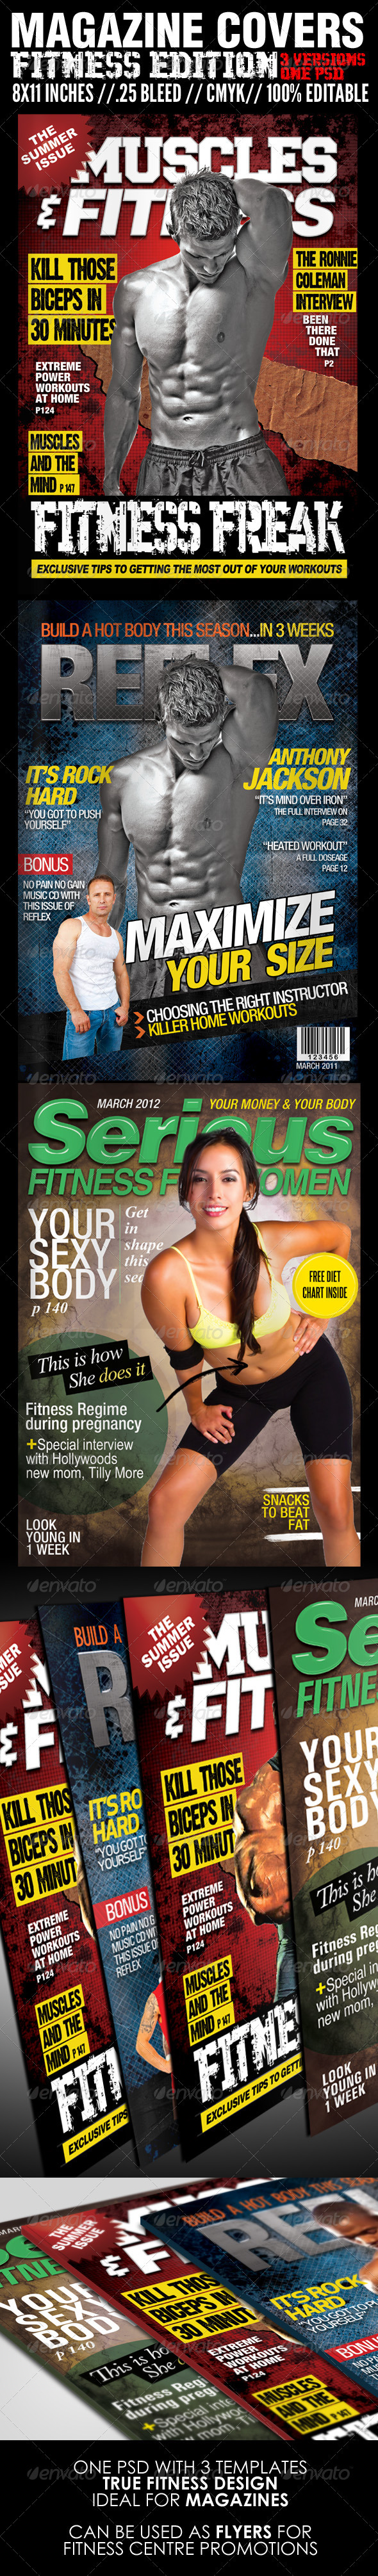 Magazine Cover Templates - Fitness Edition - Magazines Print Templates